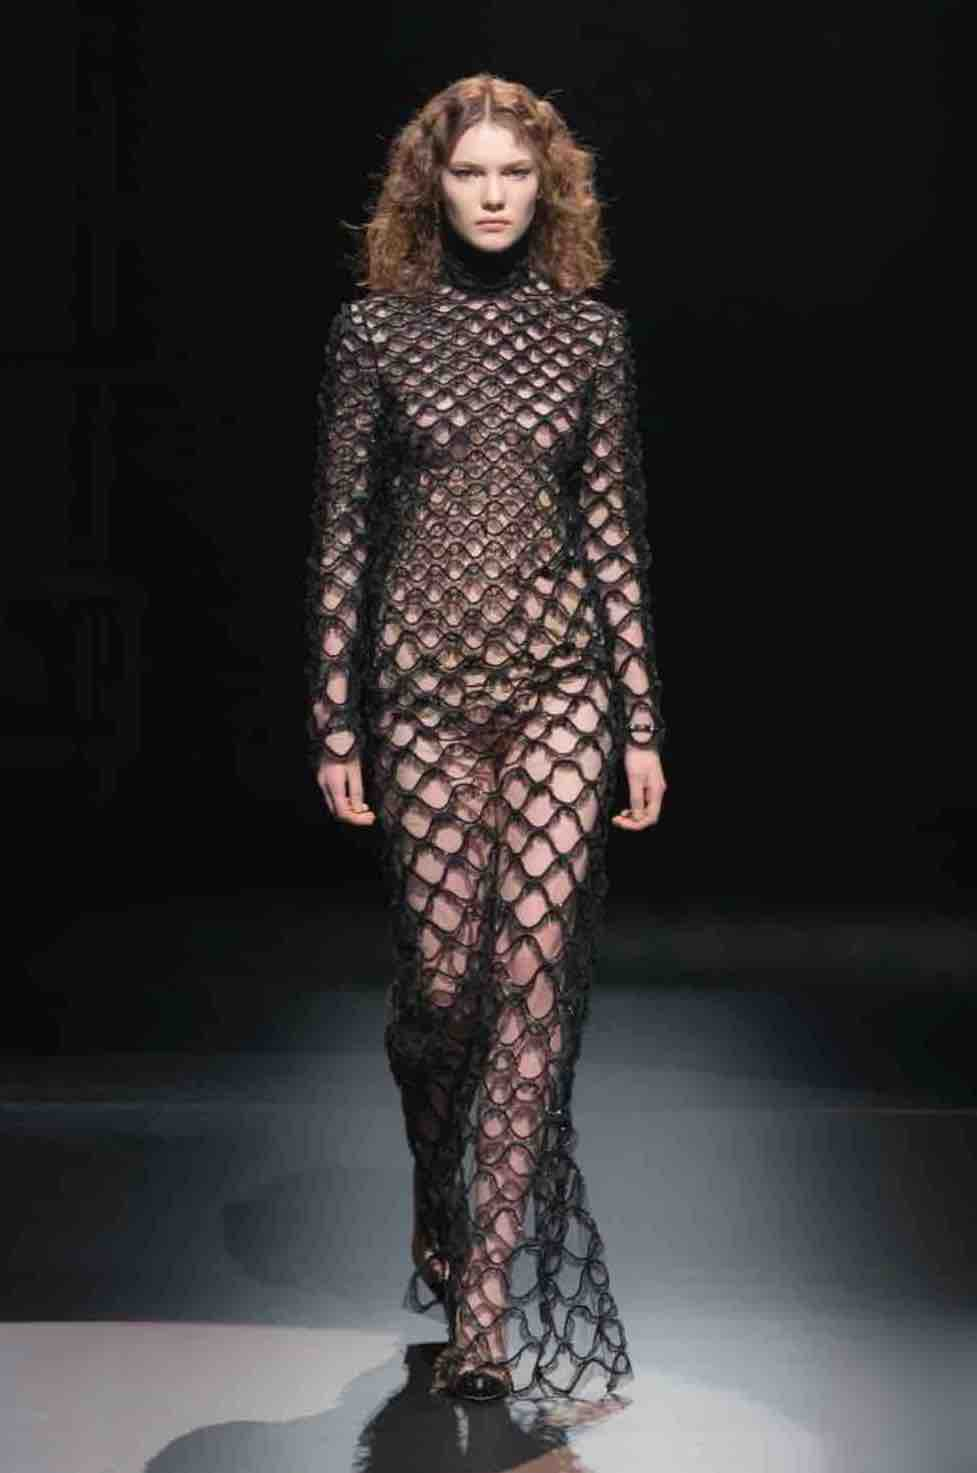 Valentino Transparent Look Is One Of The Style Trends To Shop For Fall 2021